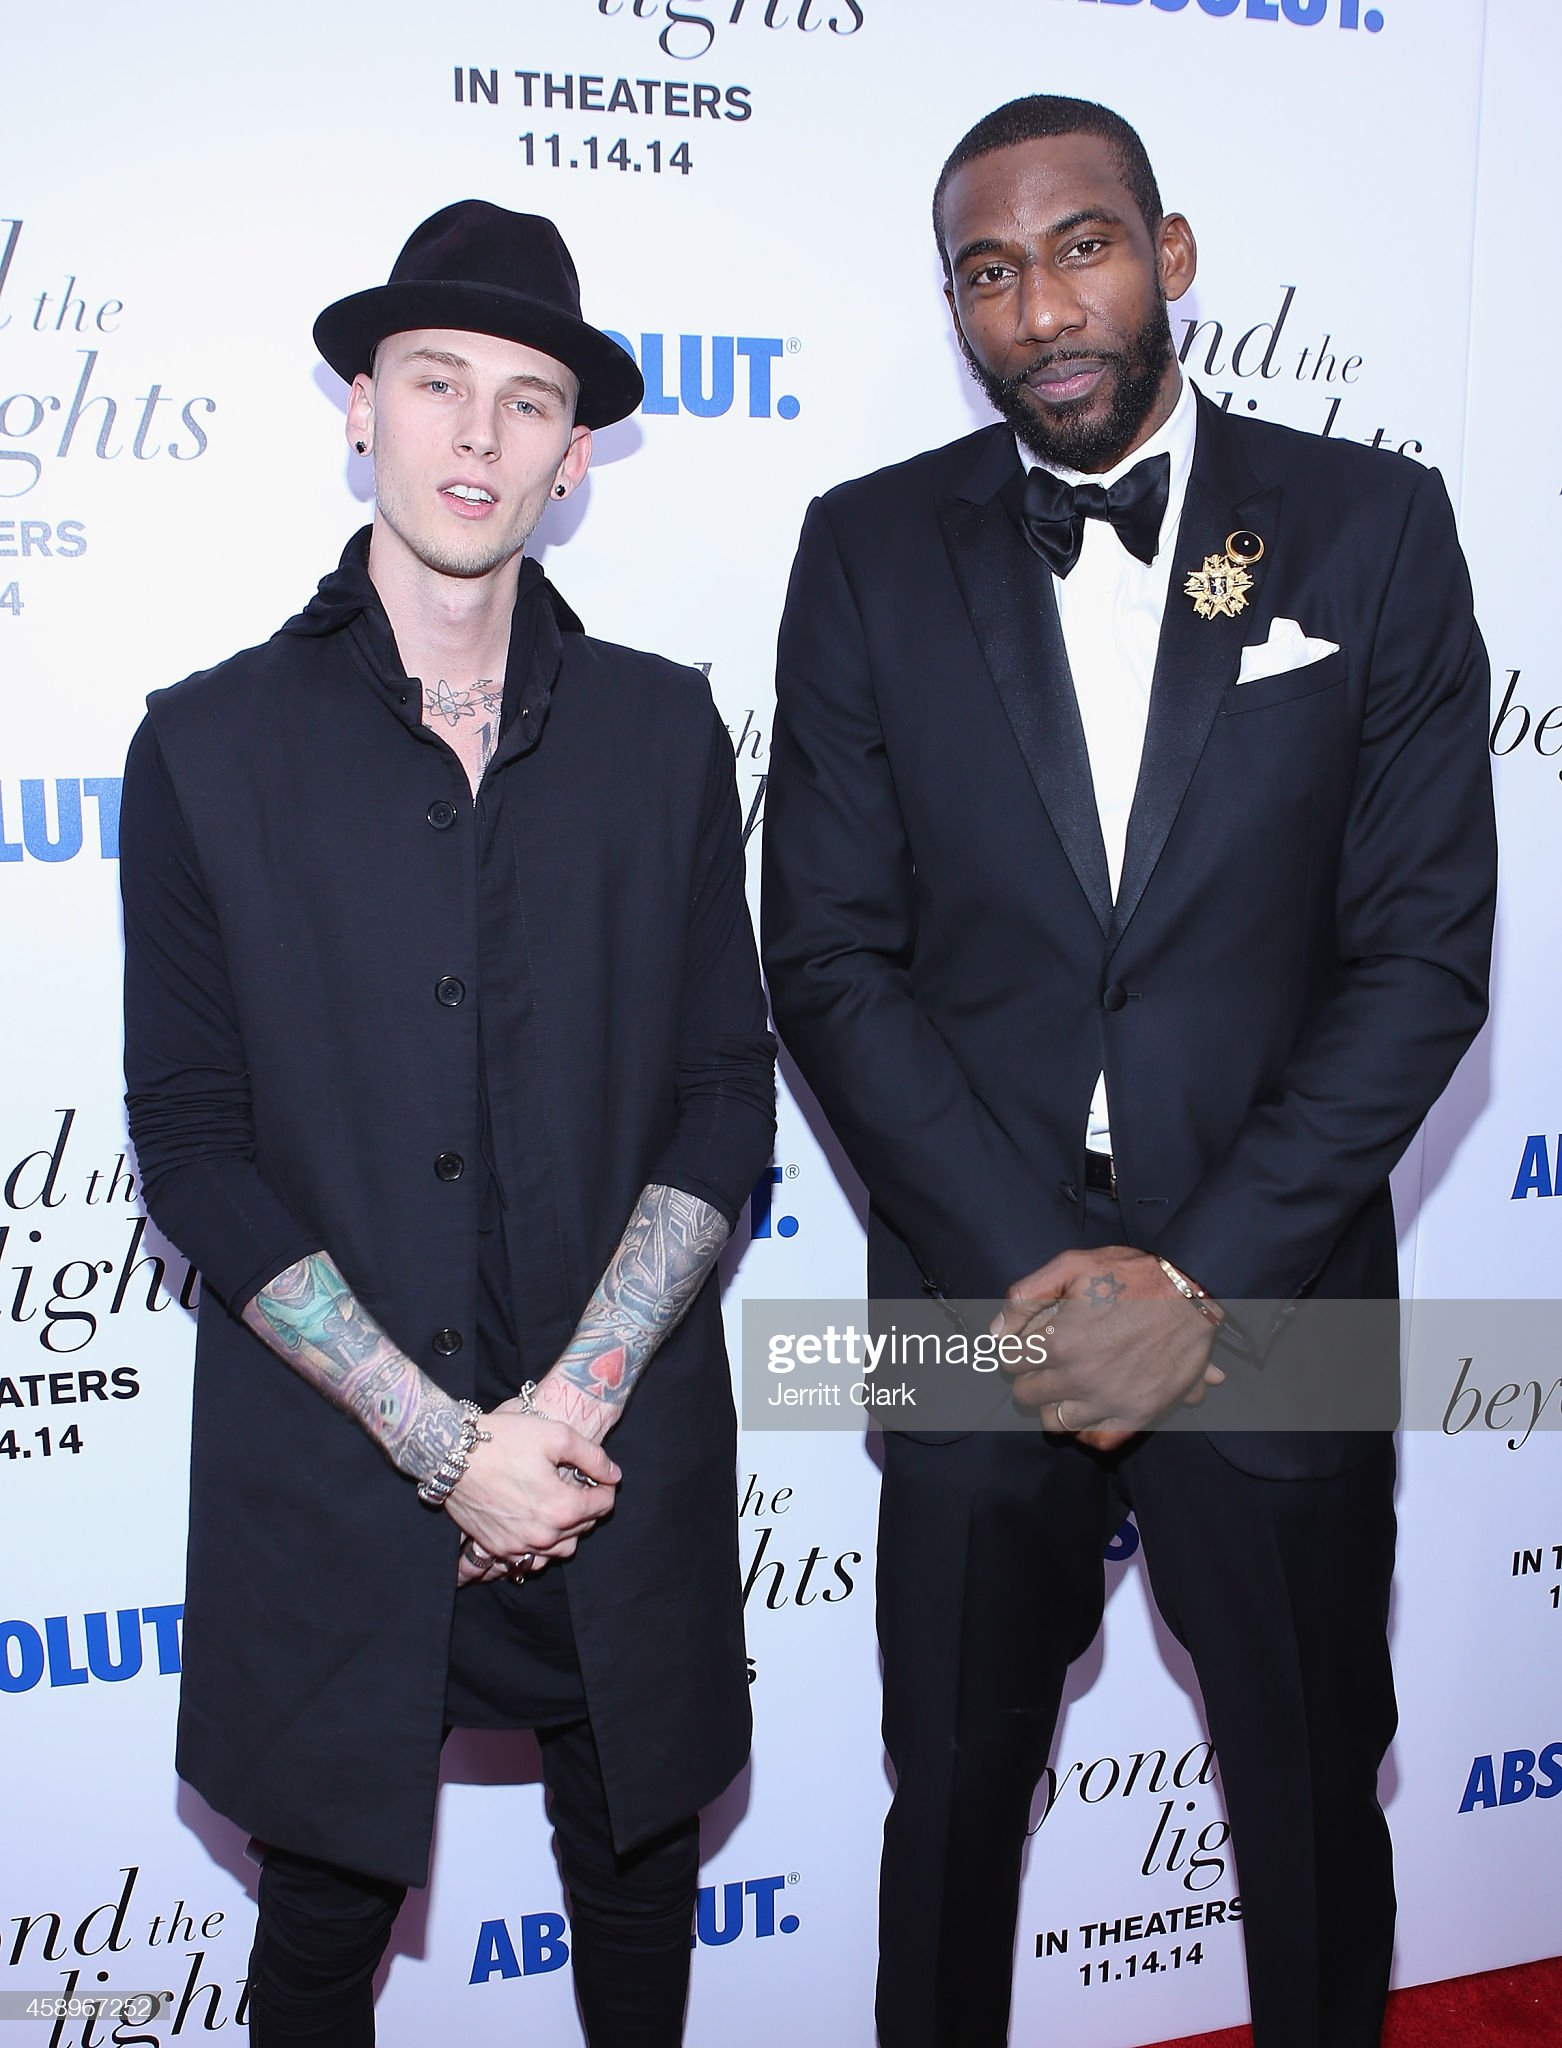 ¿Cuánto mide Machine Gun Kelly? (MGK) - Altura - Real height Actor-rapper-machine-gun-kelly-and-producer-nba-player-amare-attends-picture-id458967252?s=2048x2048